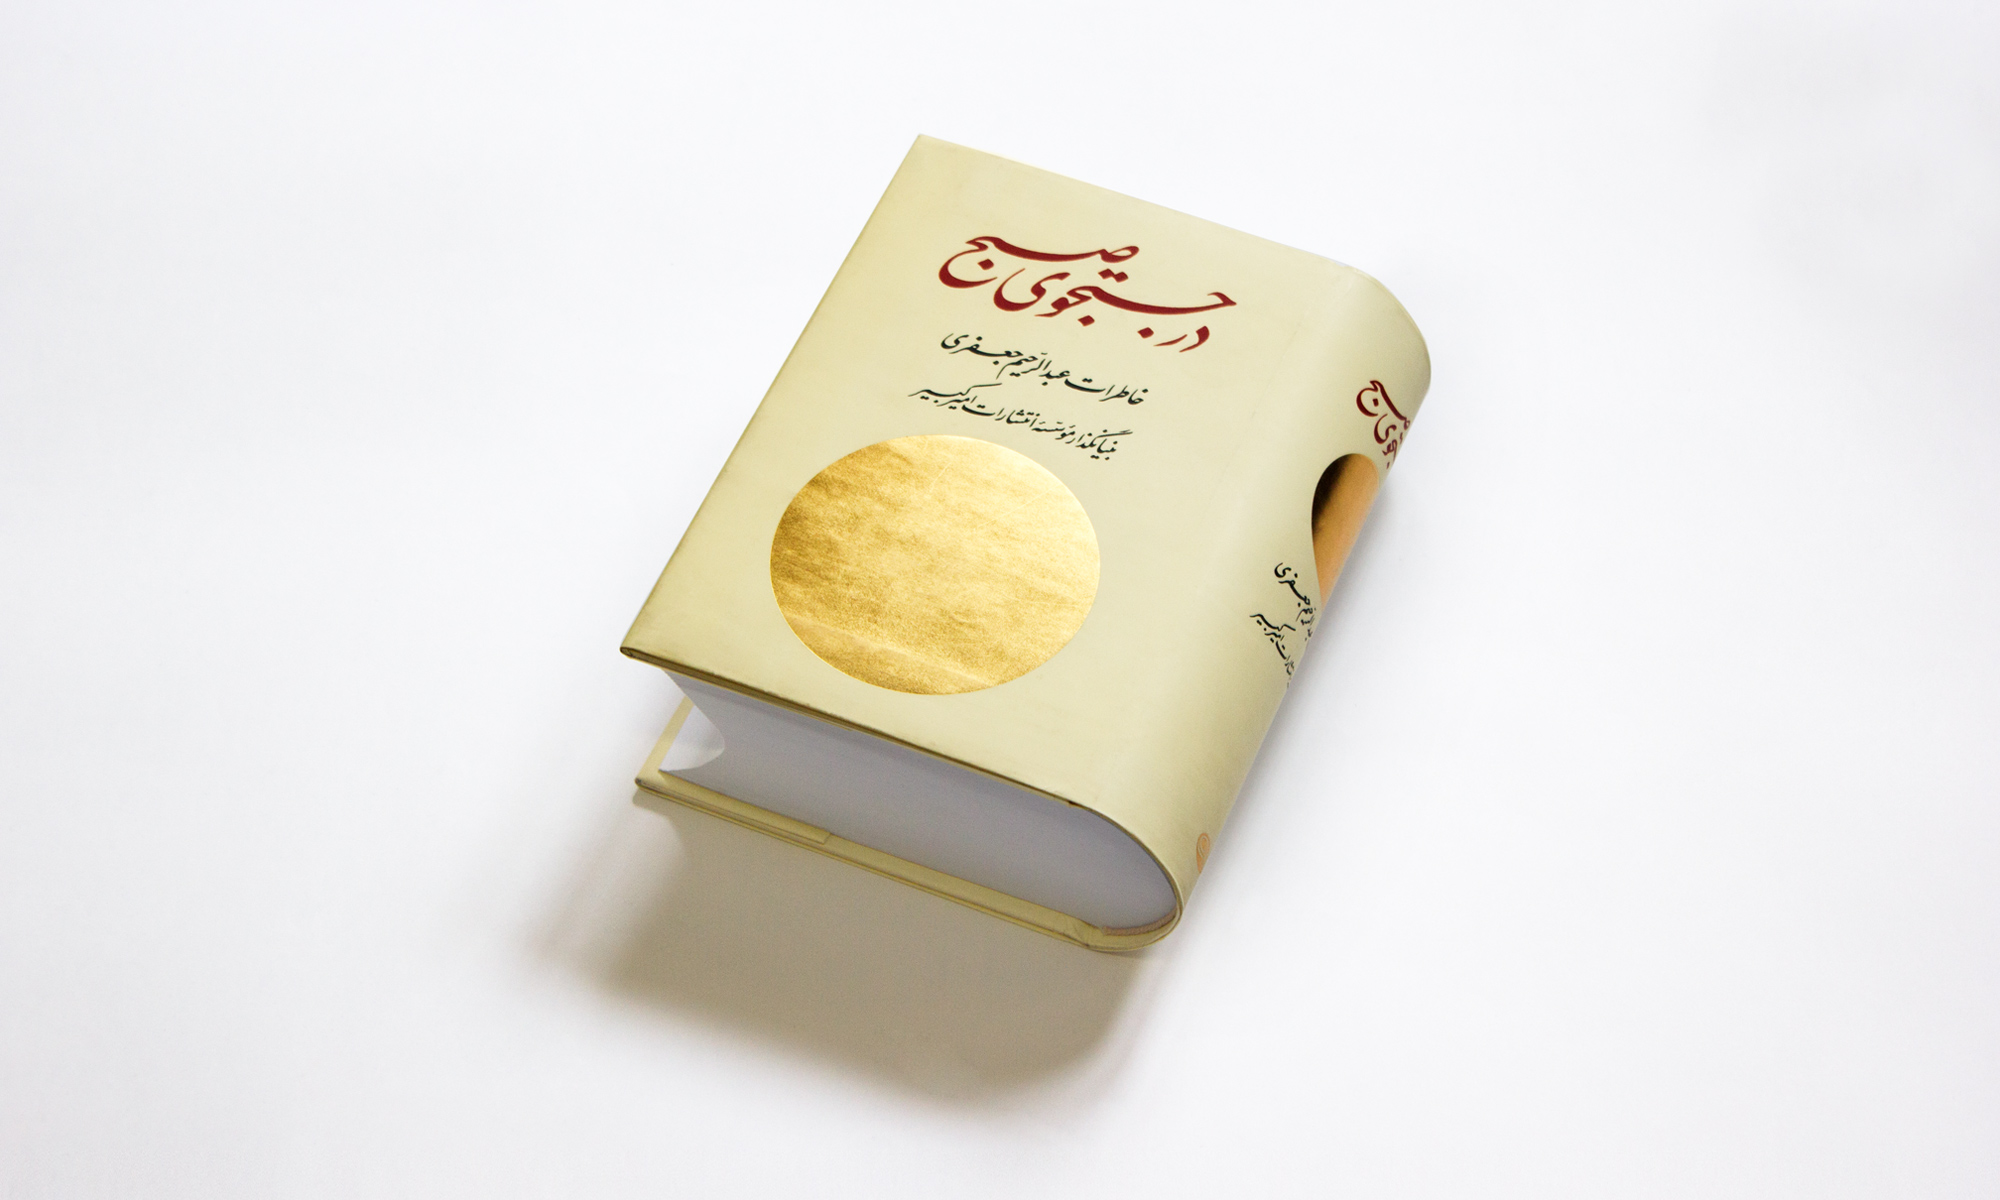 Roozbahan Publication